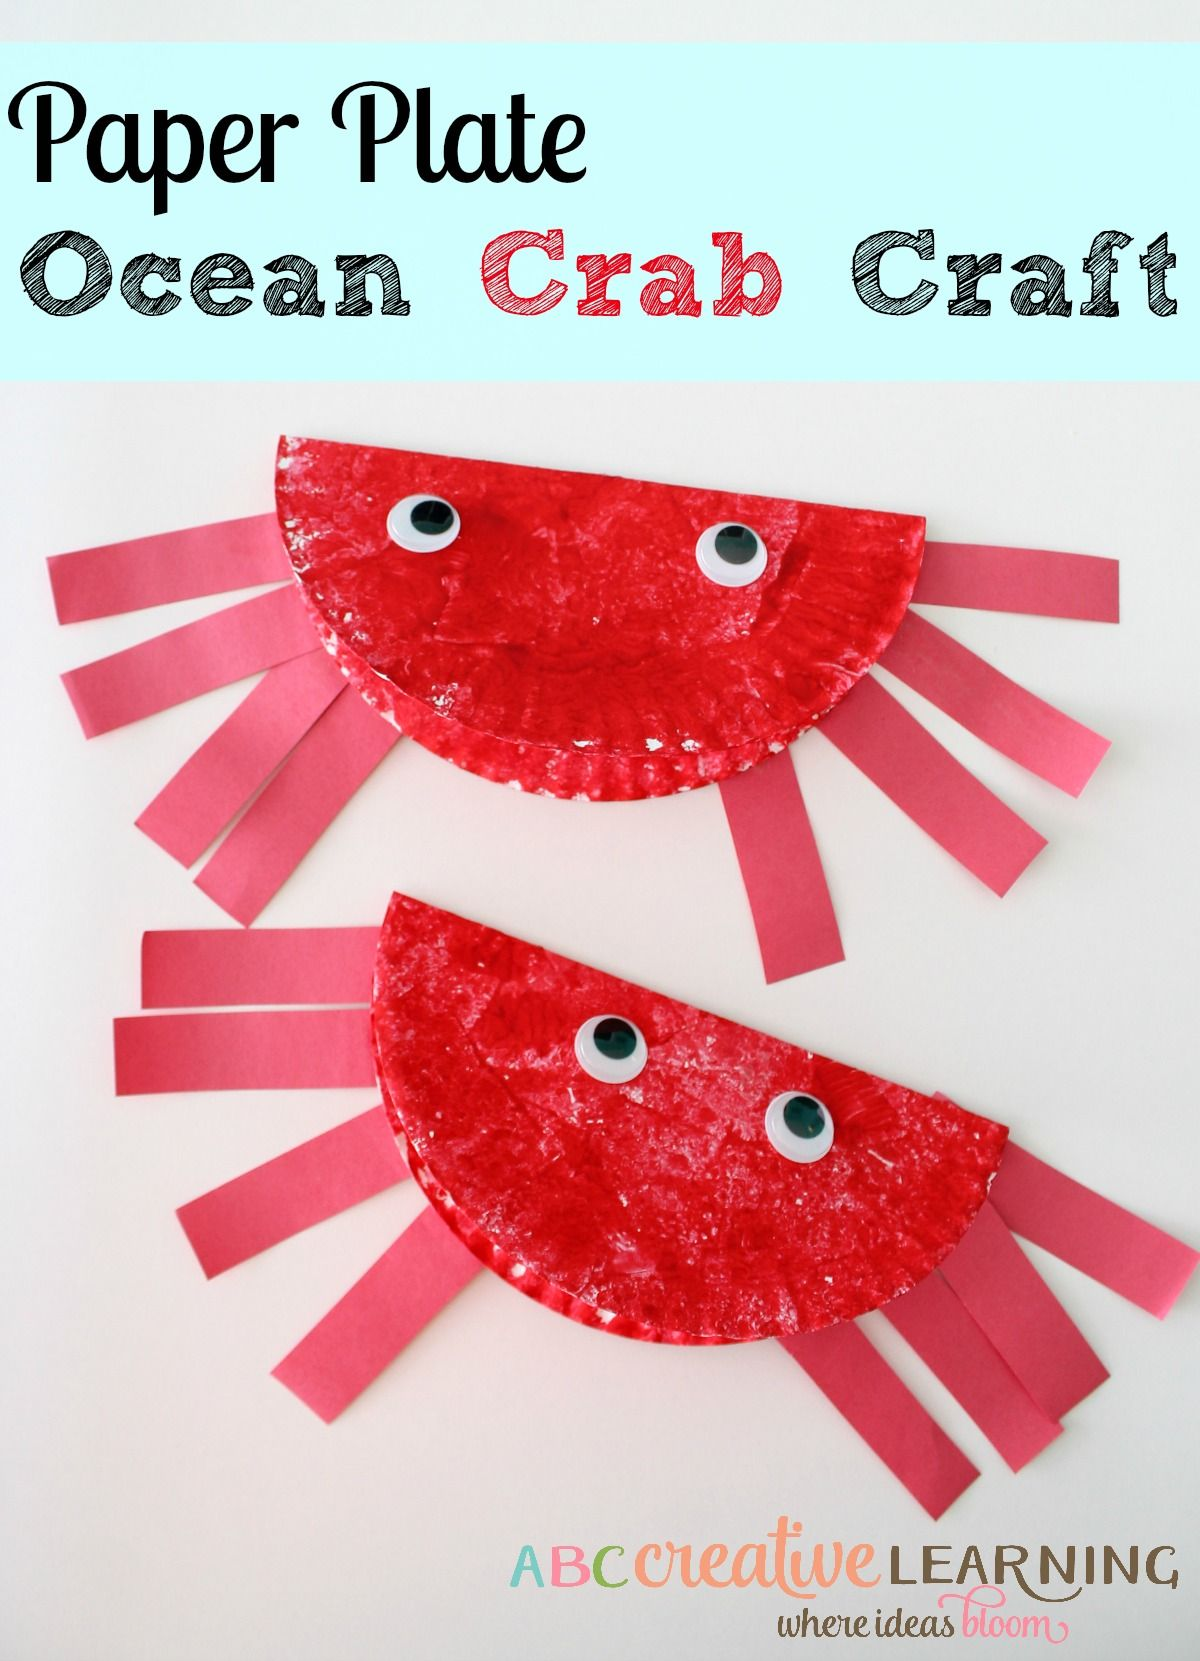 Easy Paper Plate Ocean Crab Craft For Kids To Celebrate Summer Time  sc 1 st  Pinterest & Easy Paper Plate Ocean Crab Craft For Kids To Celebrate Summer Time ...